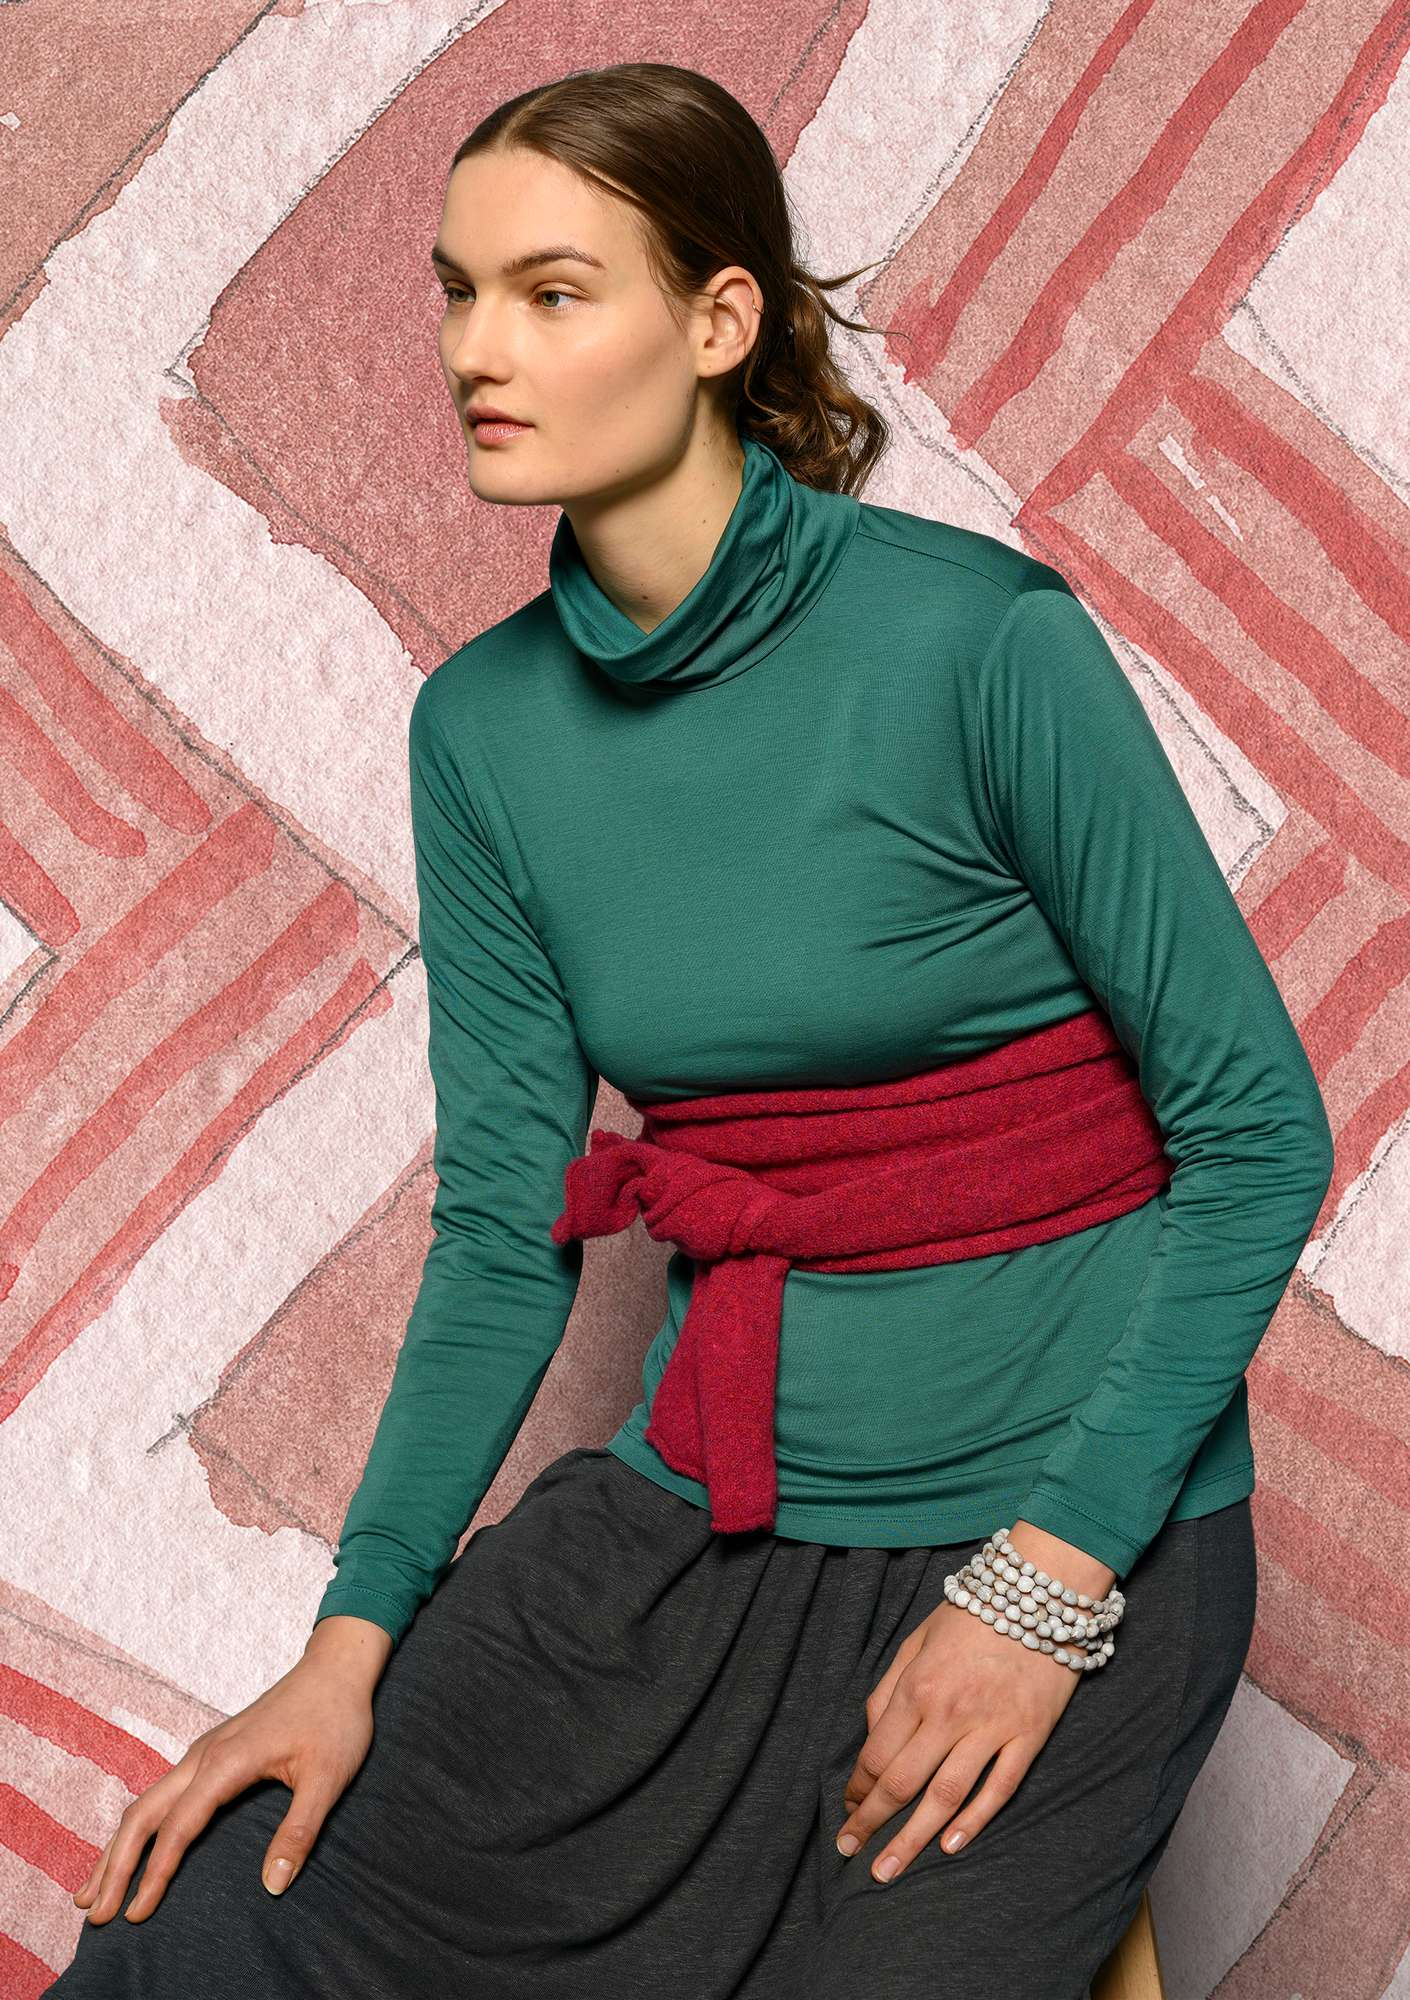 Solid-color turtleneck in lyocell/spandex peacock  green